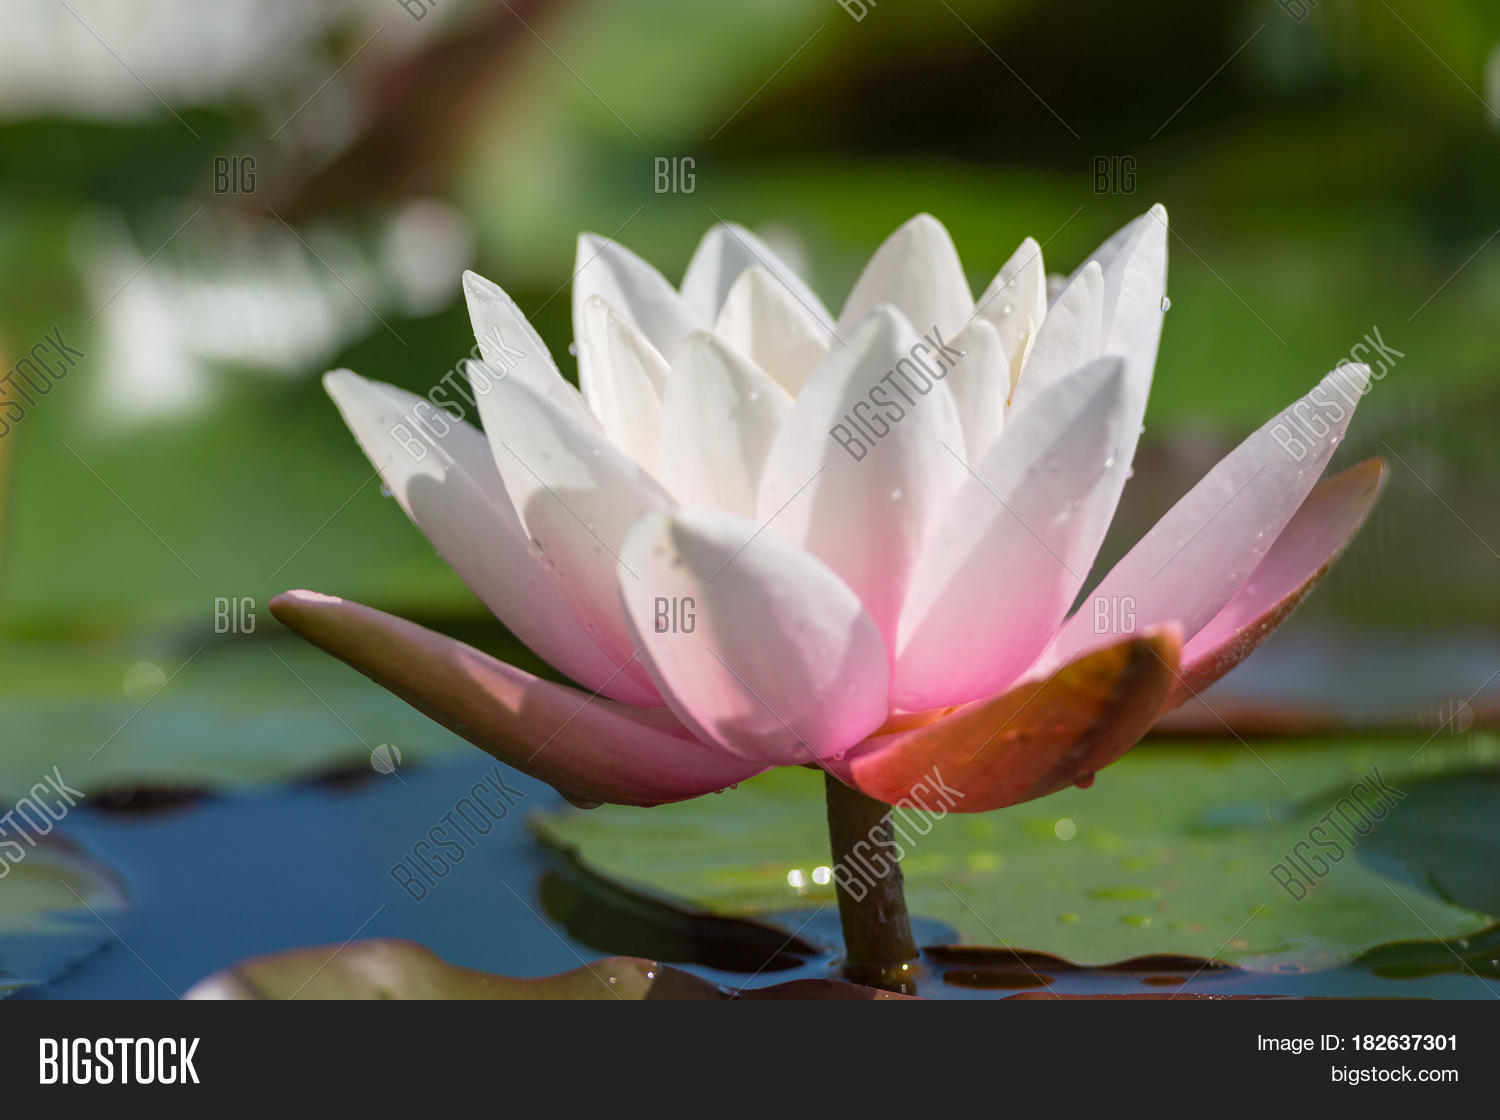 Pink White Lotus Image Photo Free Trial Bigstock